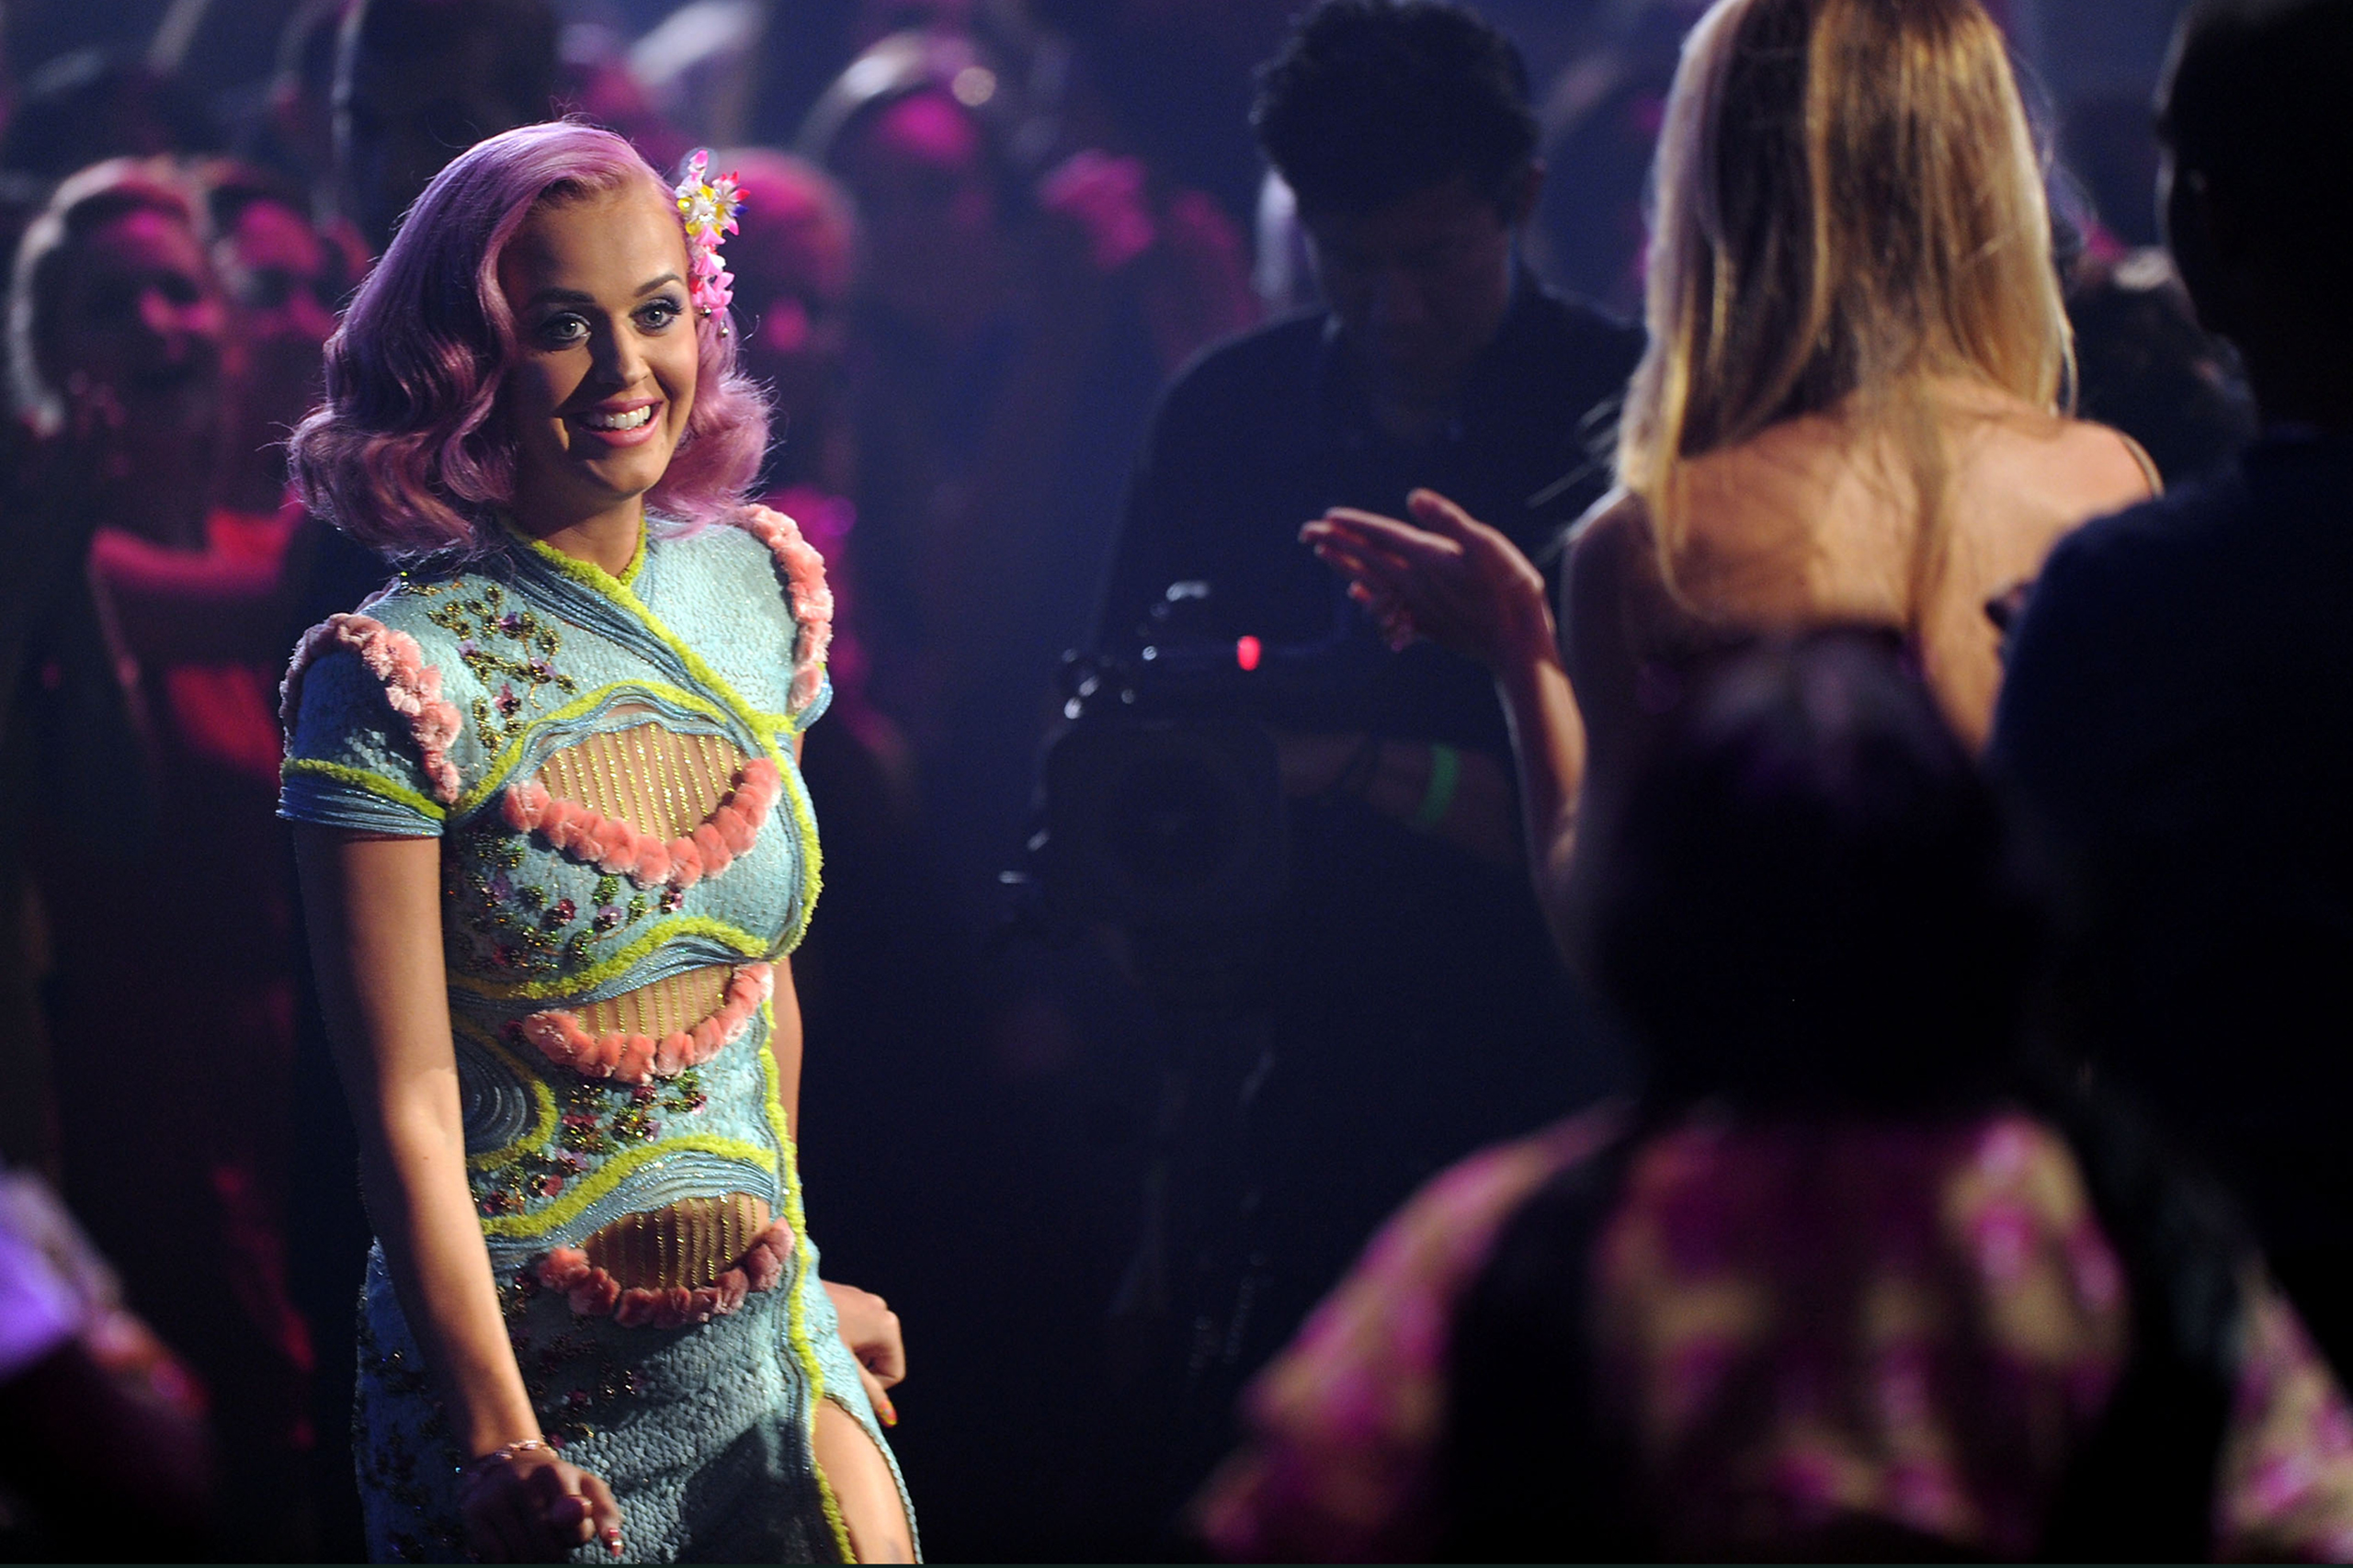 Katy Perry accepts the Best Collaboration award onstage during the 2011 MTV Video Music Awards at Nokia Theatre L.A. LIVE in Los Angeles, on Aug. 28, 2011.